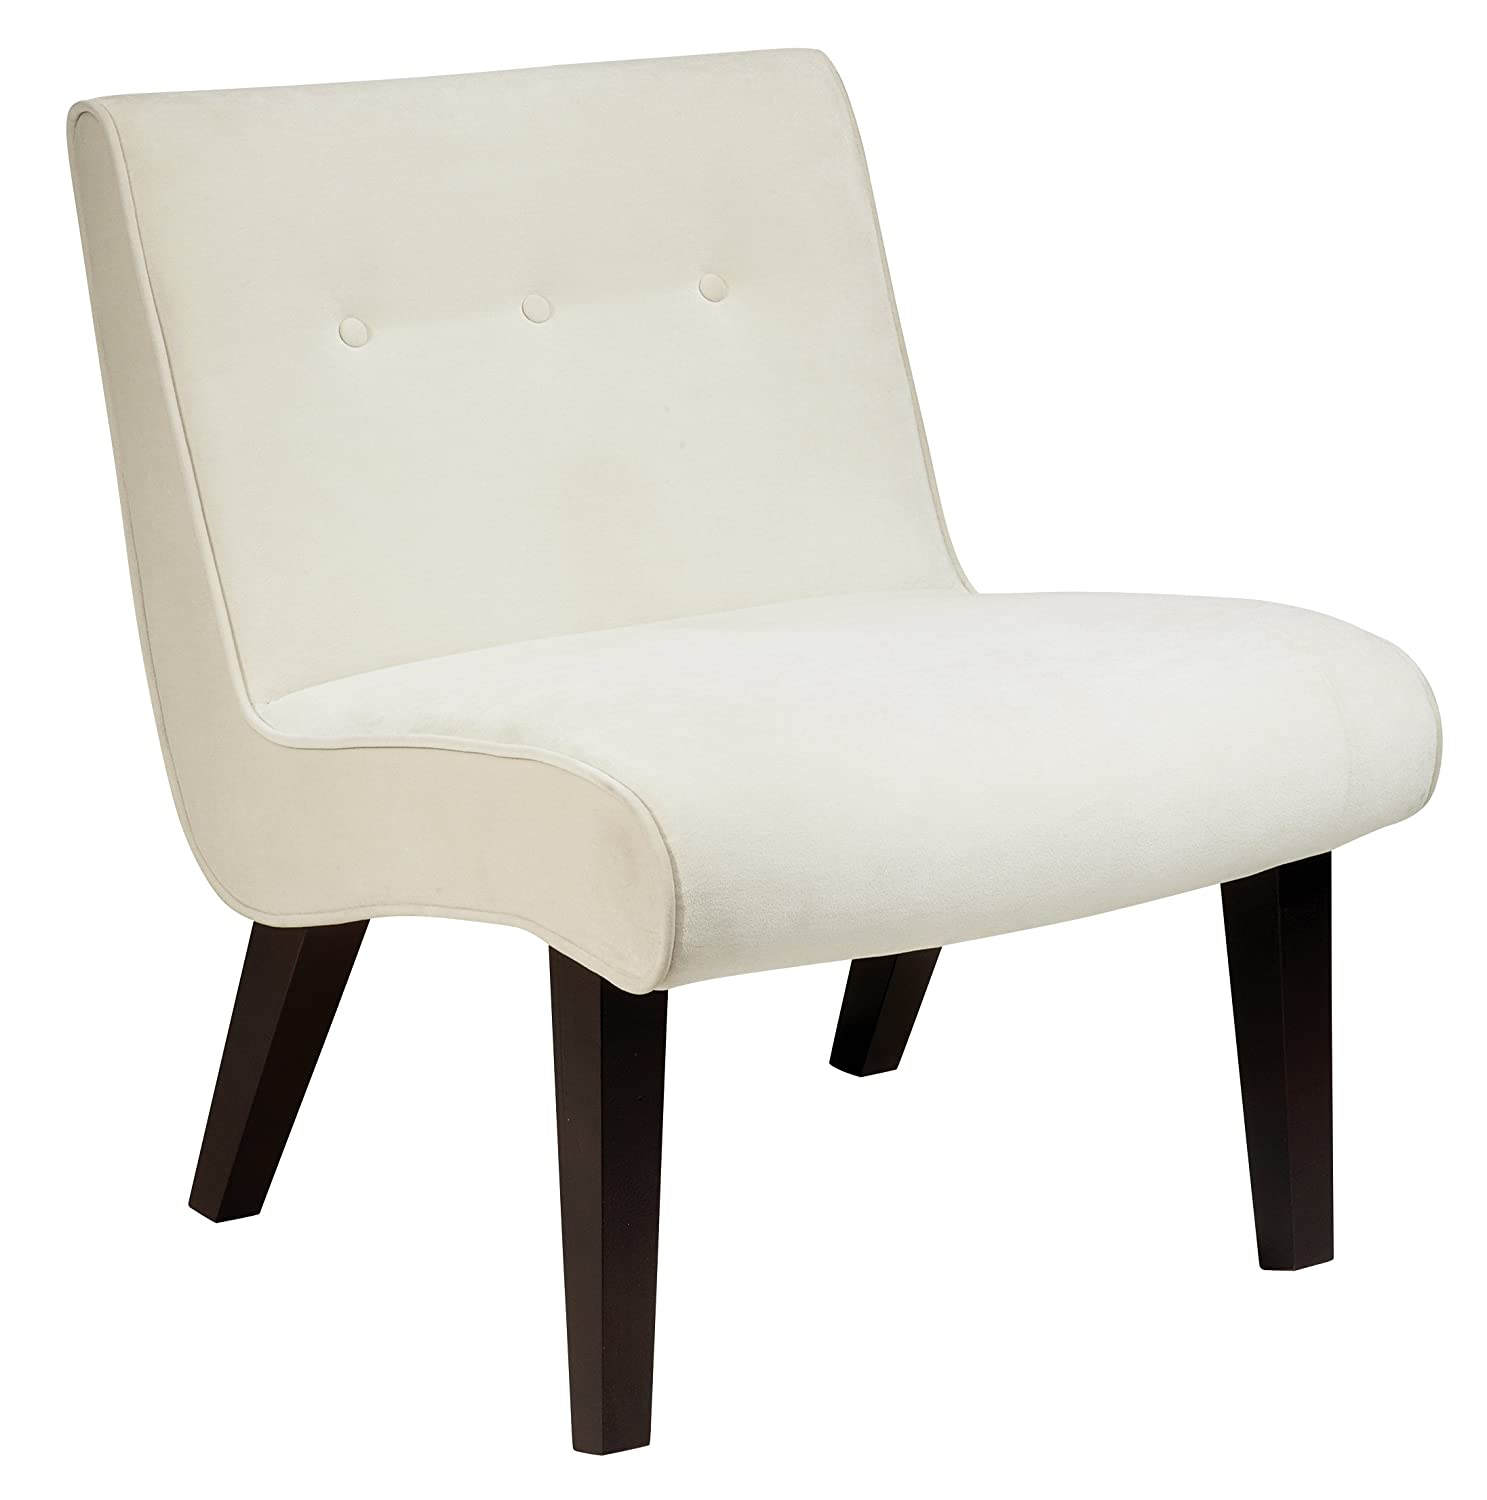 Amazon AVE SIX Curves Valencia Accent Chair with Solid Wood